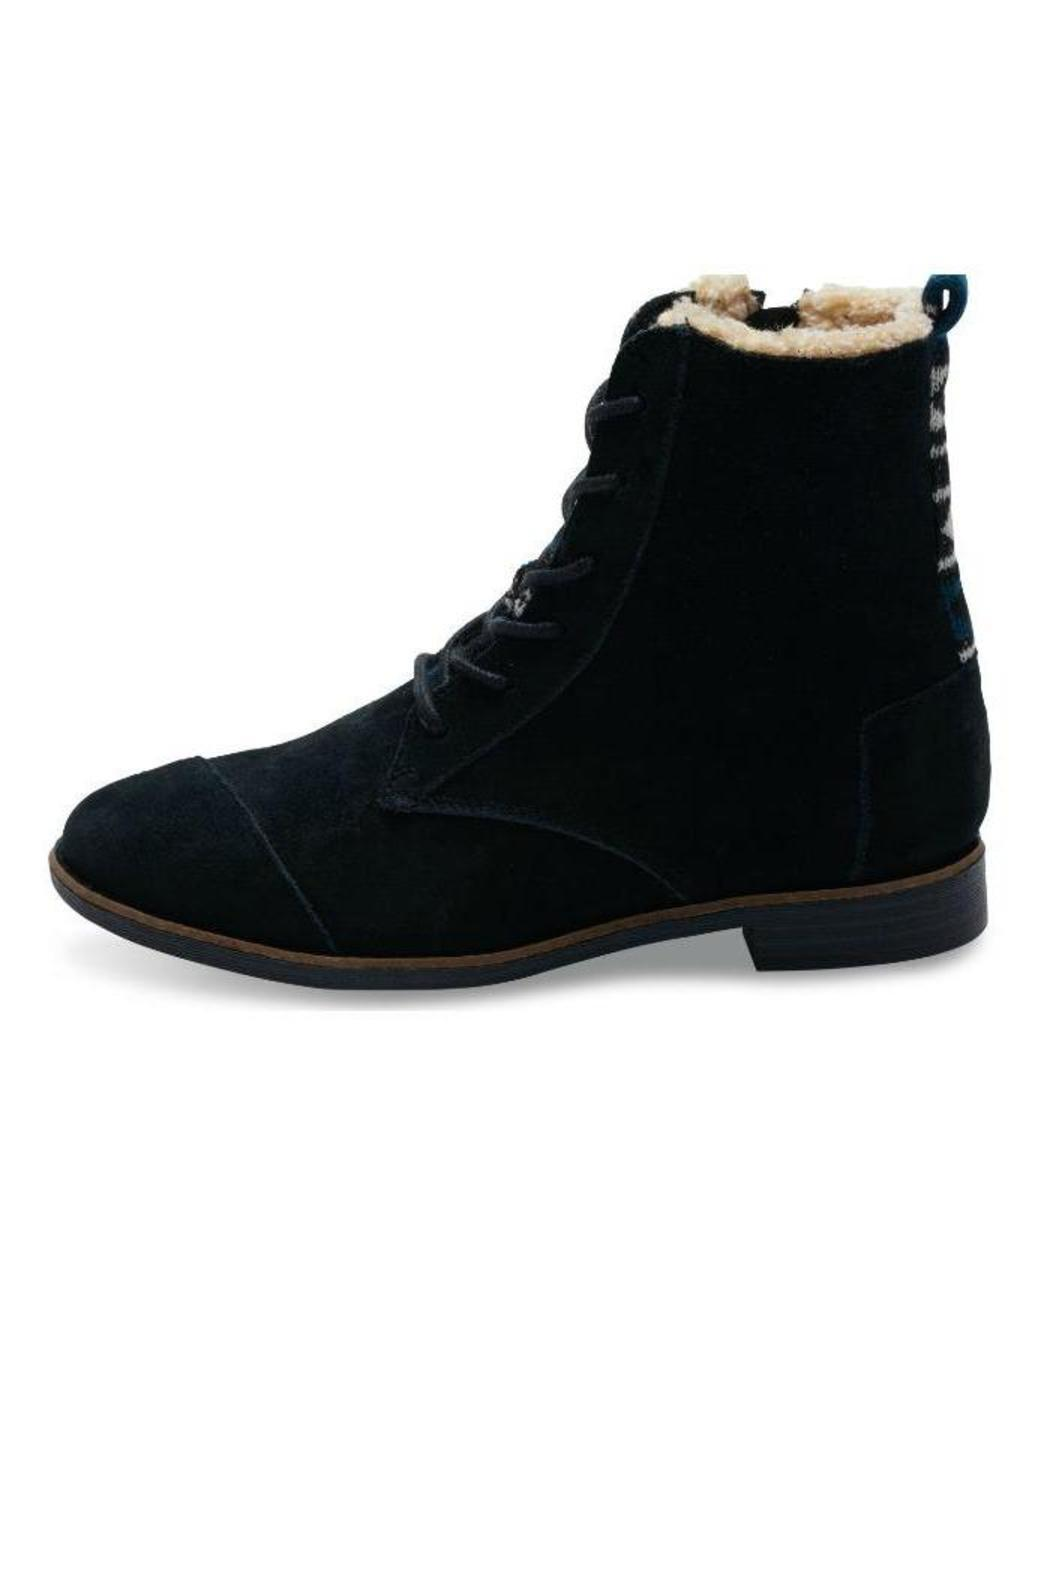 toms suede ankle boots from highlands and islands by